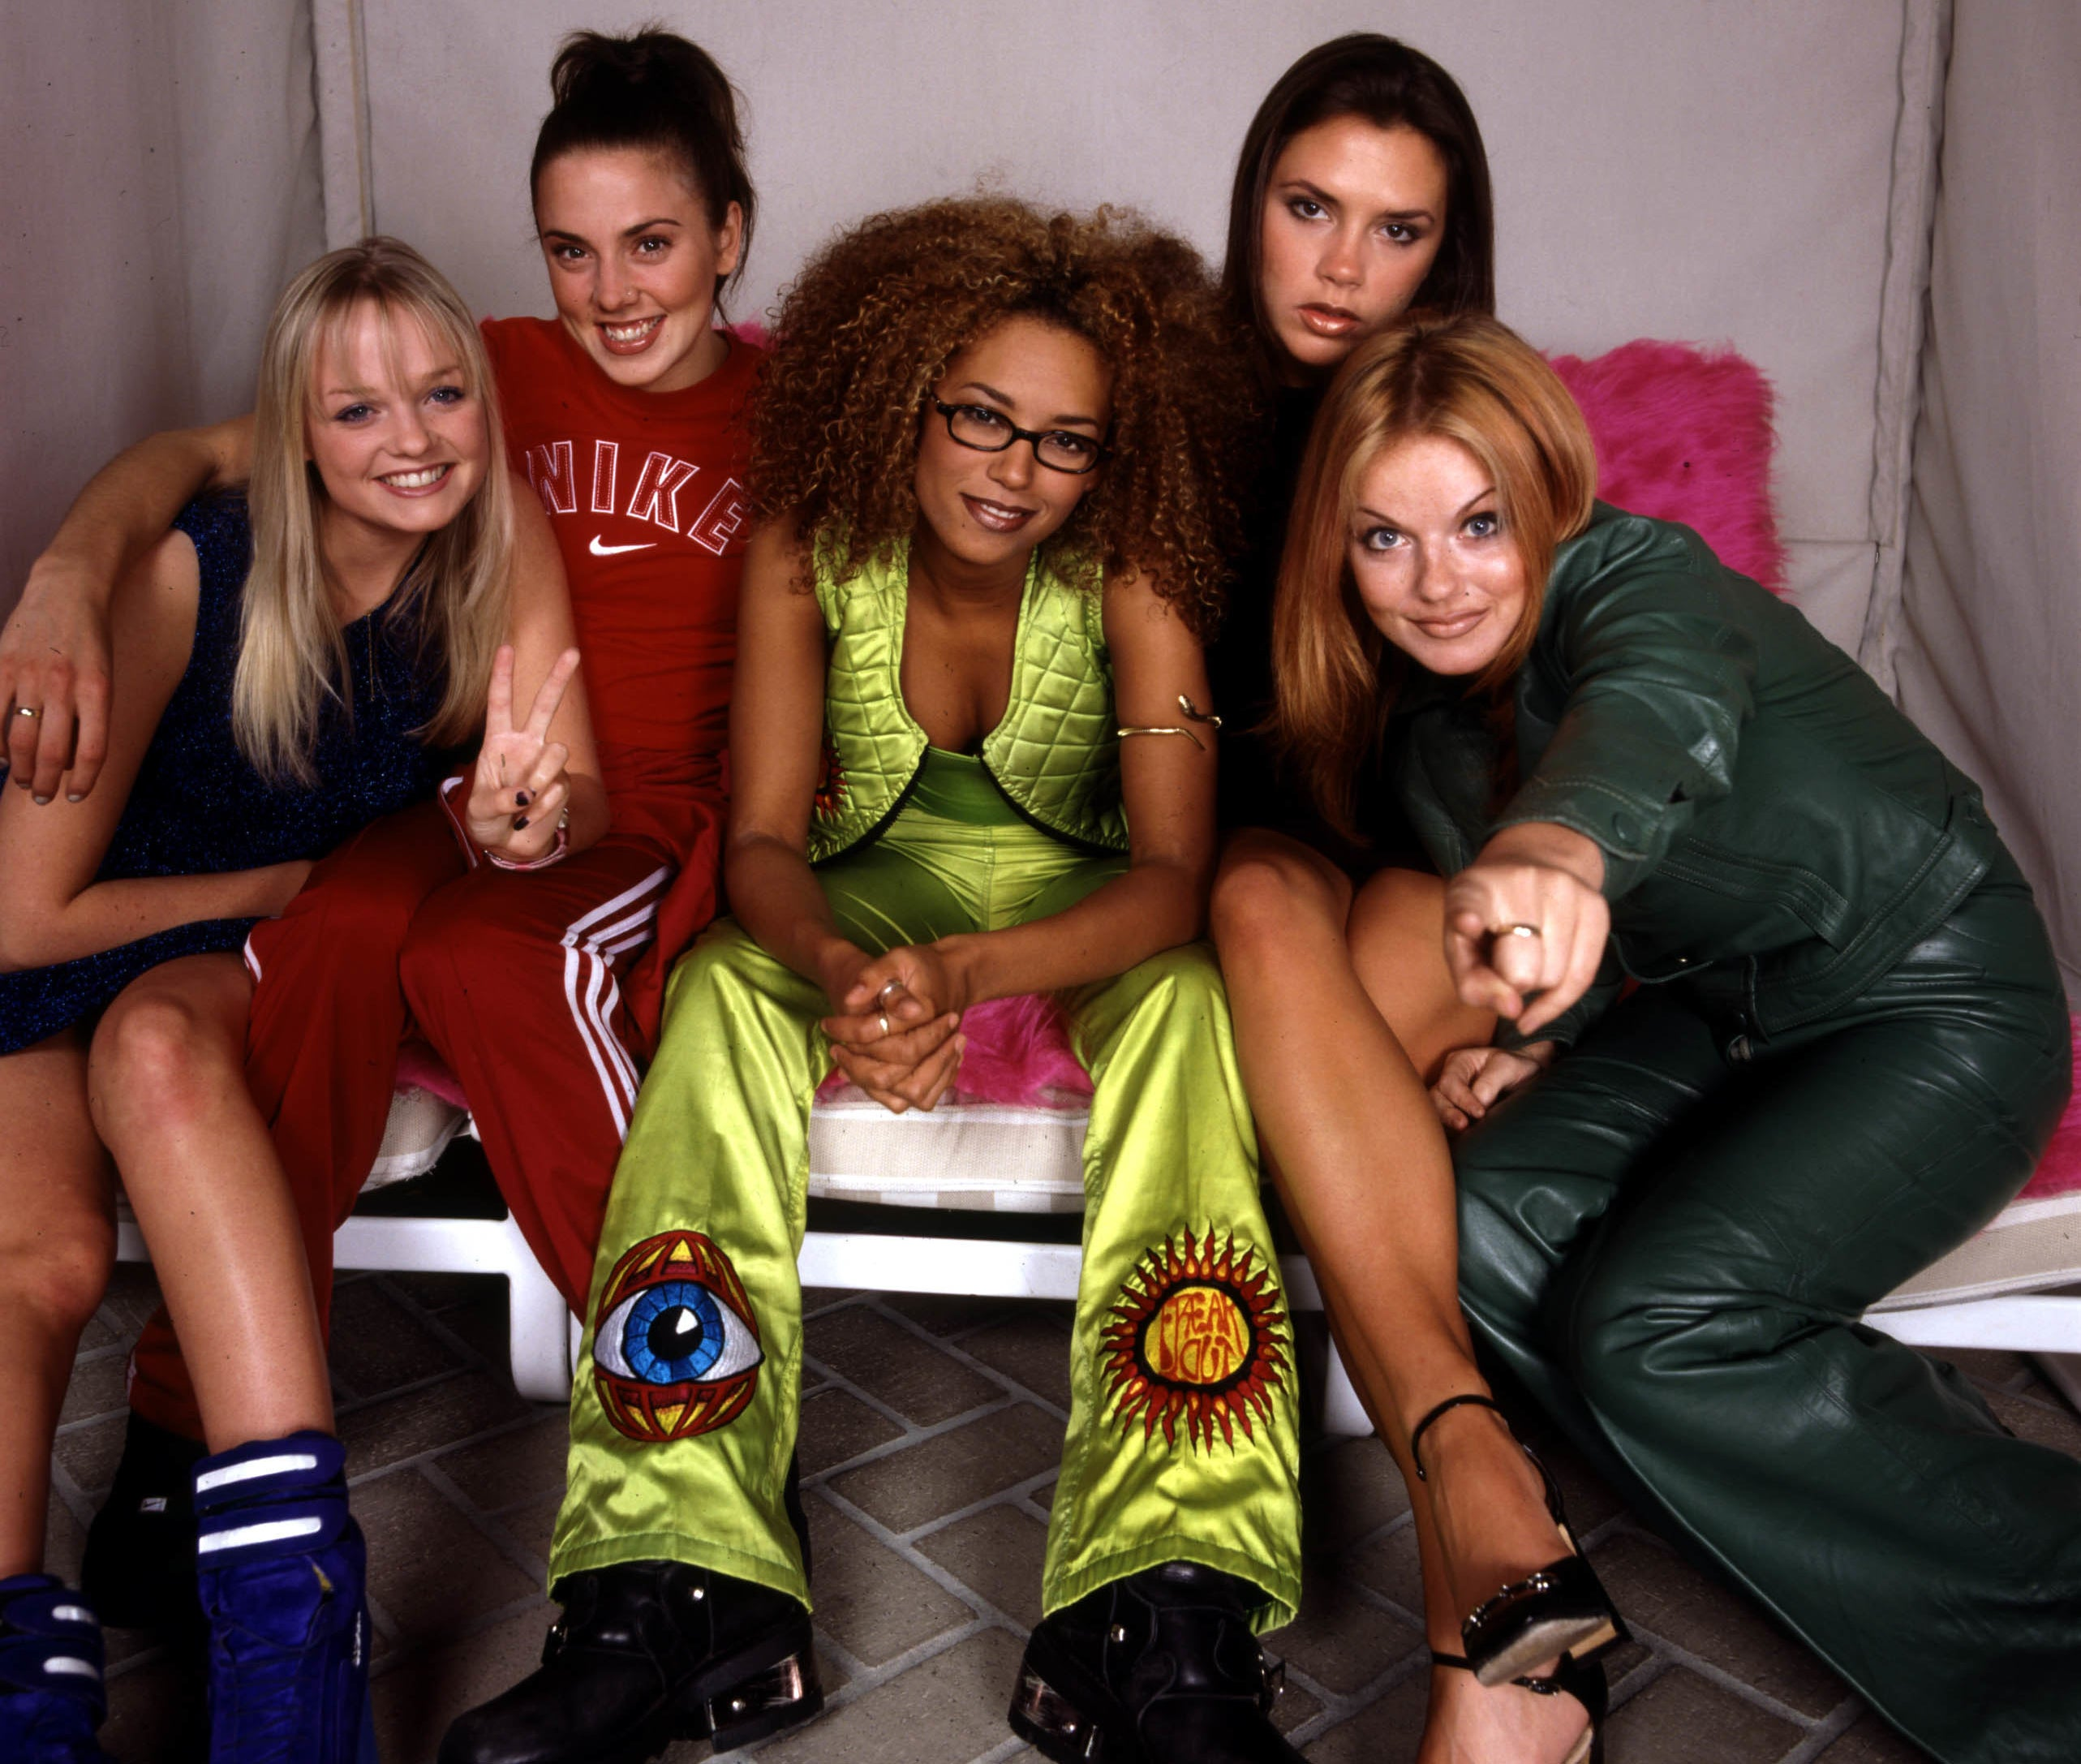 The Spice Girls sit on a pink fuzzy couch